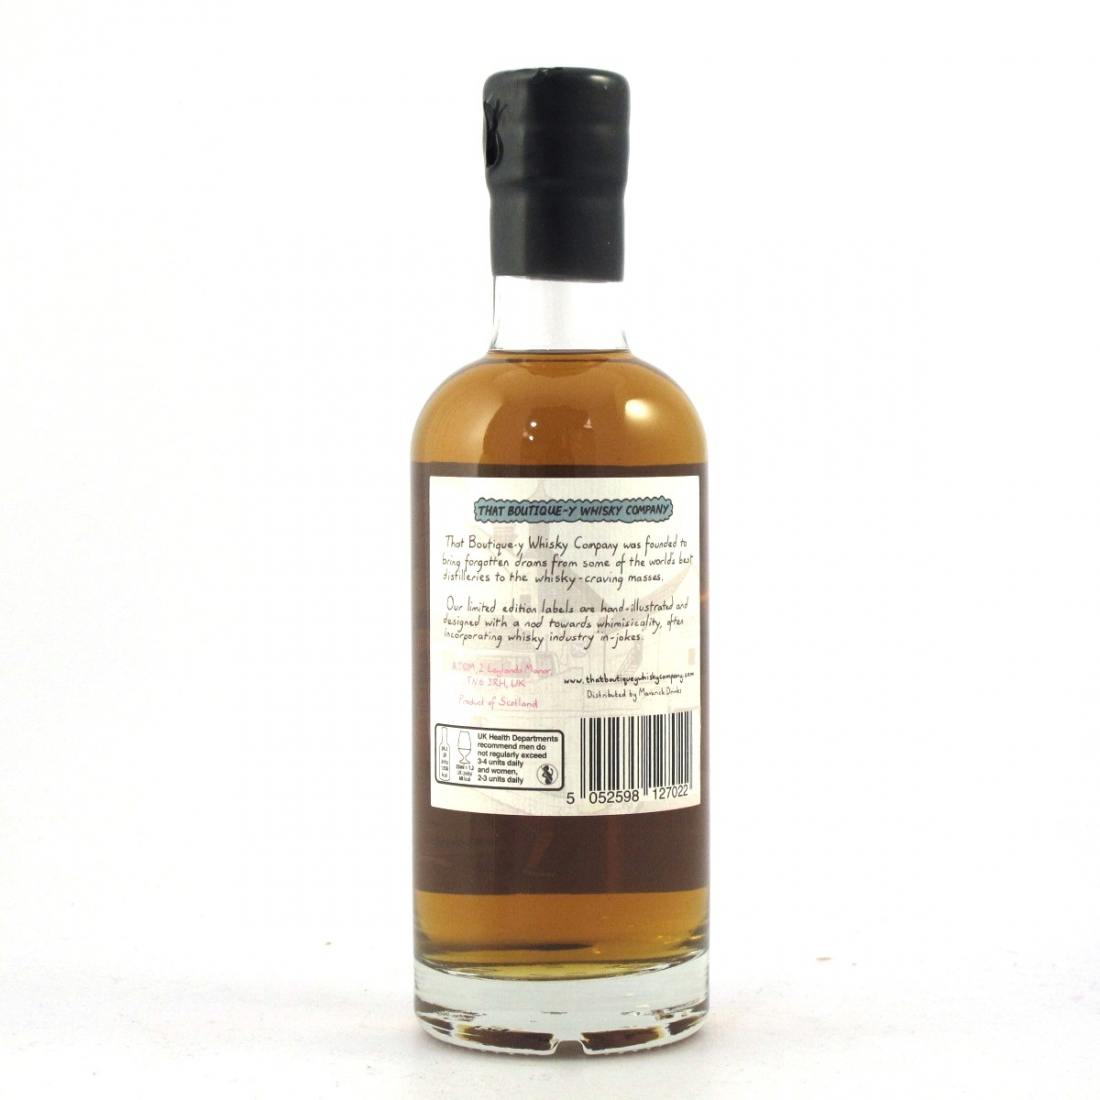 Bowmore That Boutique-y Whisky Company 21 Year Old Batch #3 / Bottle 1 of 90